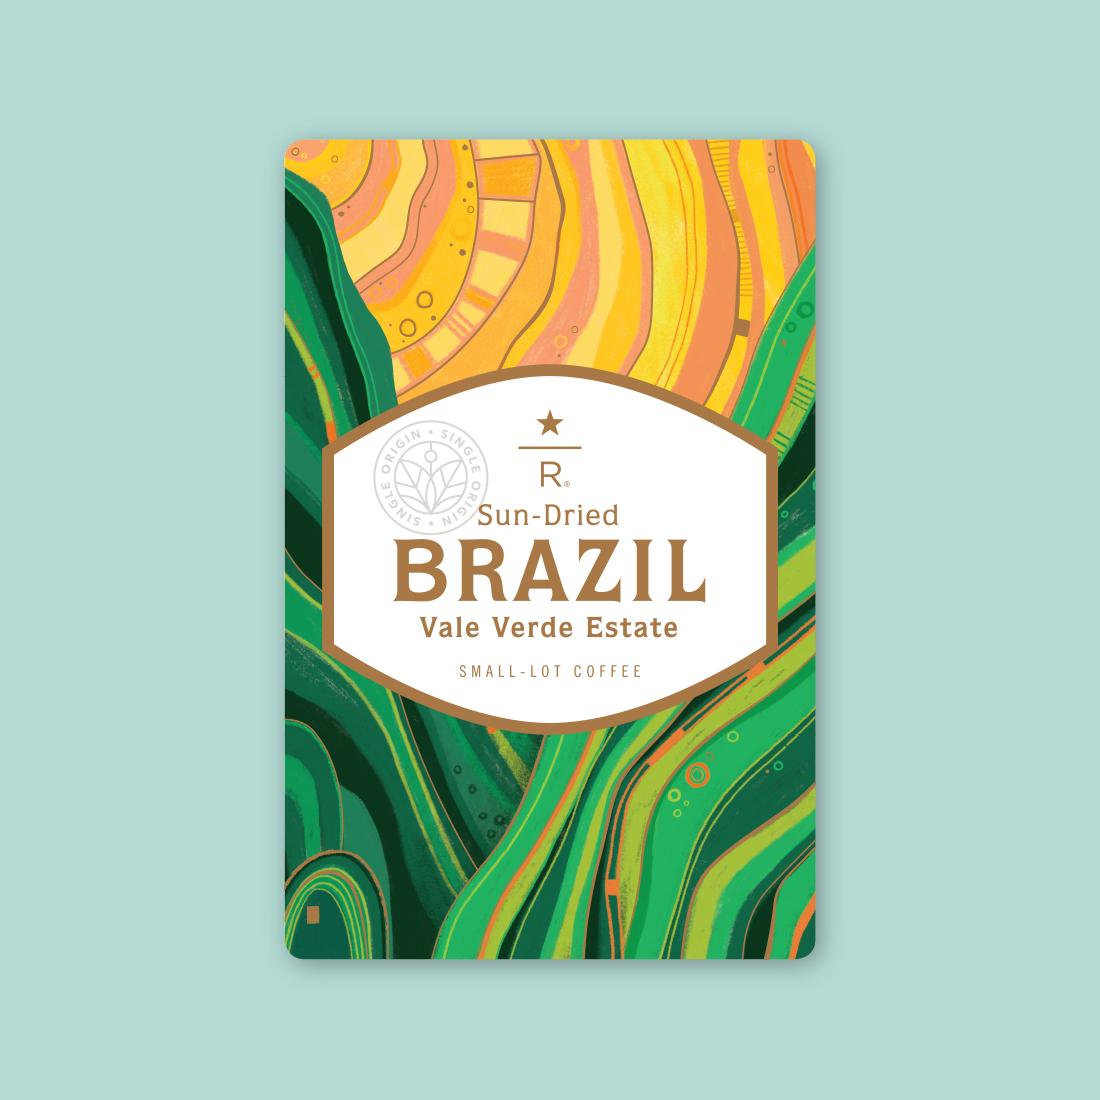 Coffee card illustration for SUN-DRIED BRAZIL VALE VERDE ESTATE